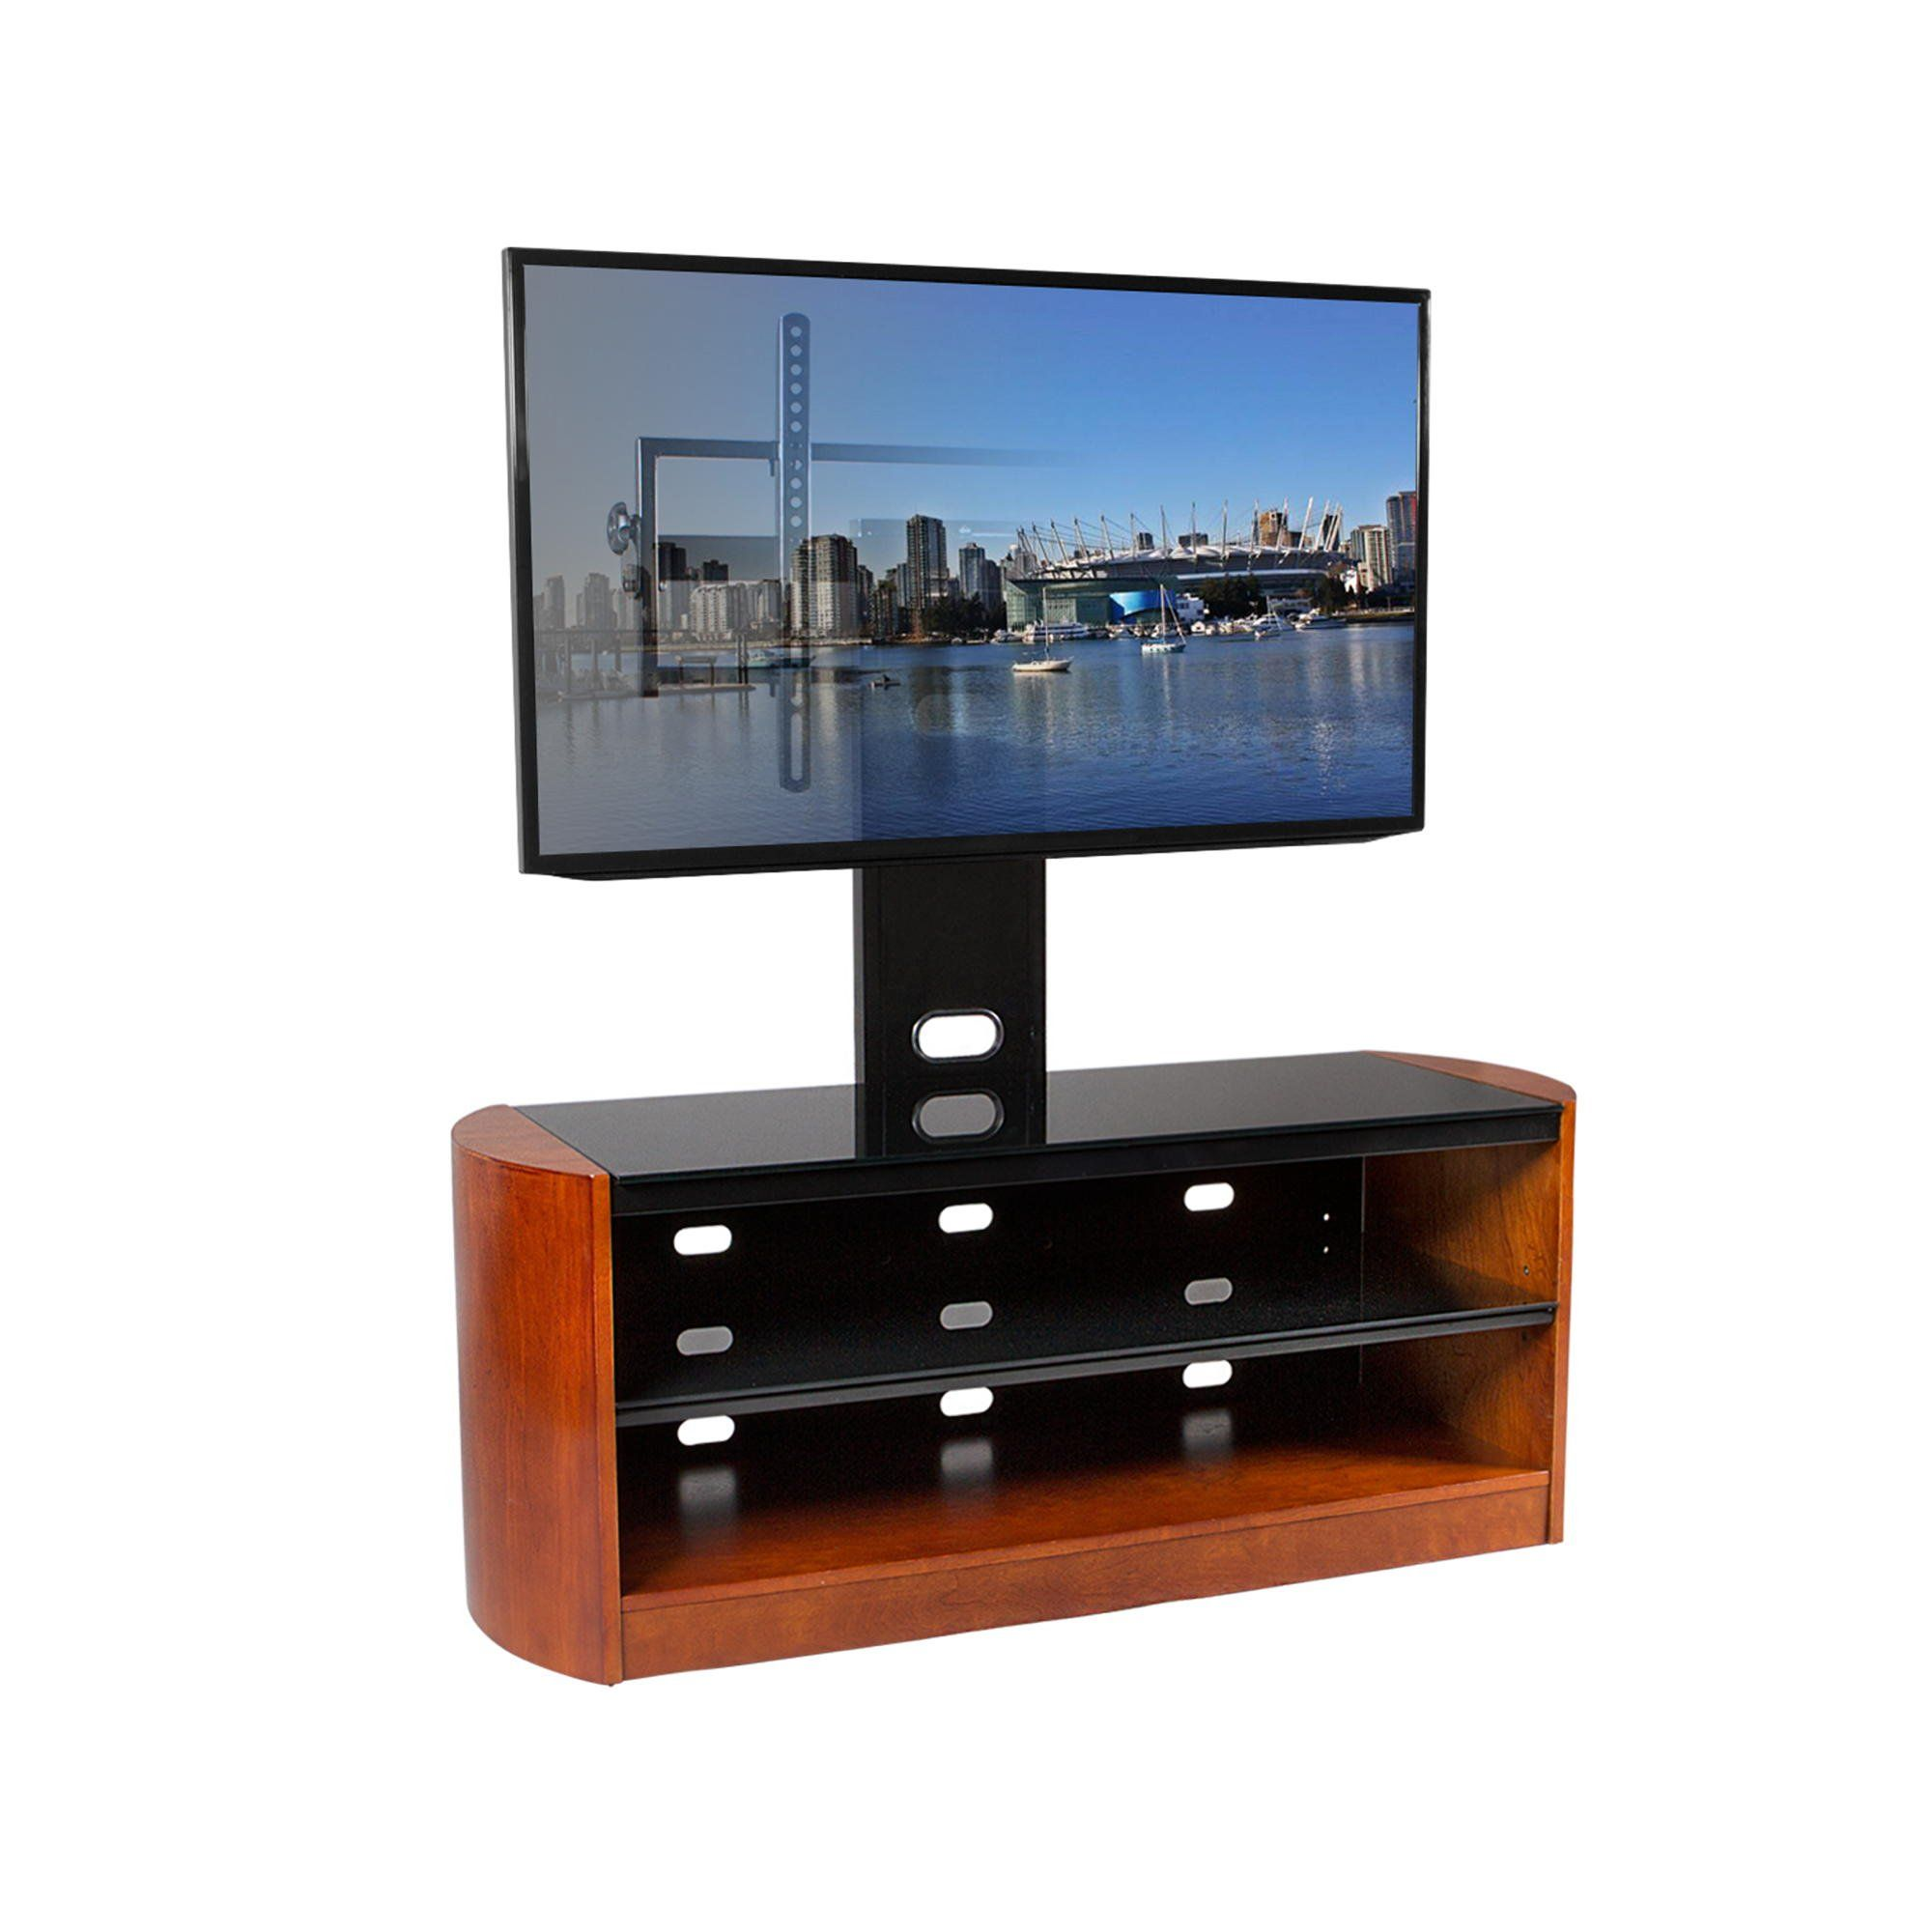 Tv Stands For 50 Flat Screens Kanto Mirpl50ch 50 Mirage Flat Screen Tv Stand With Mount And